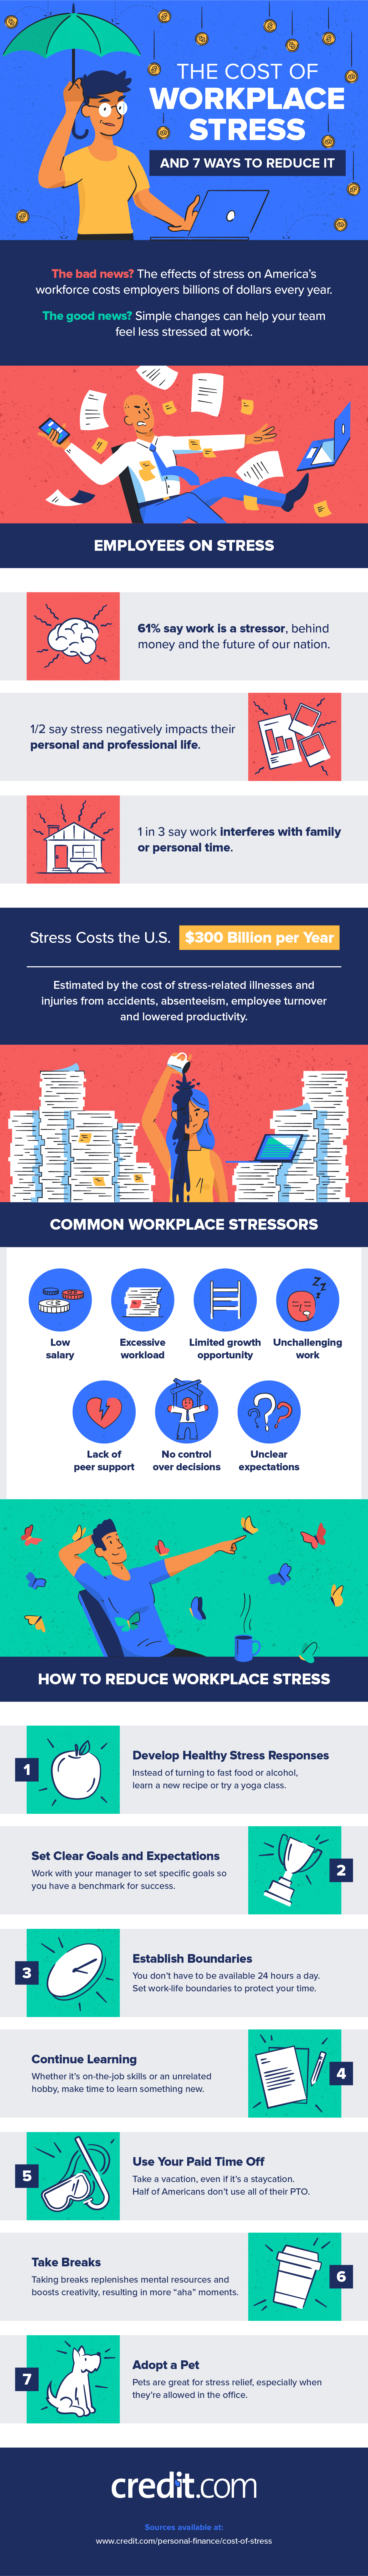 How Stress Can Be Costing Your Workplace